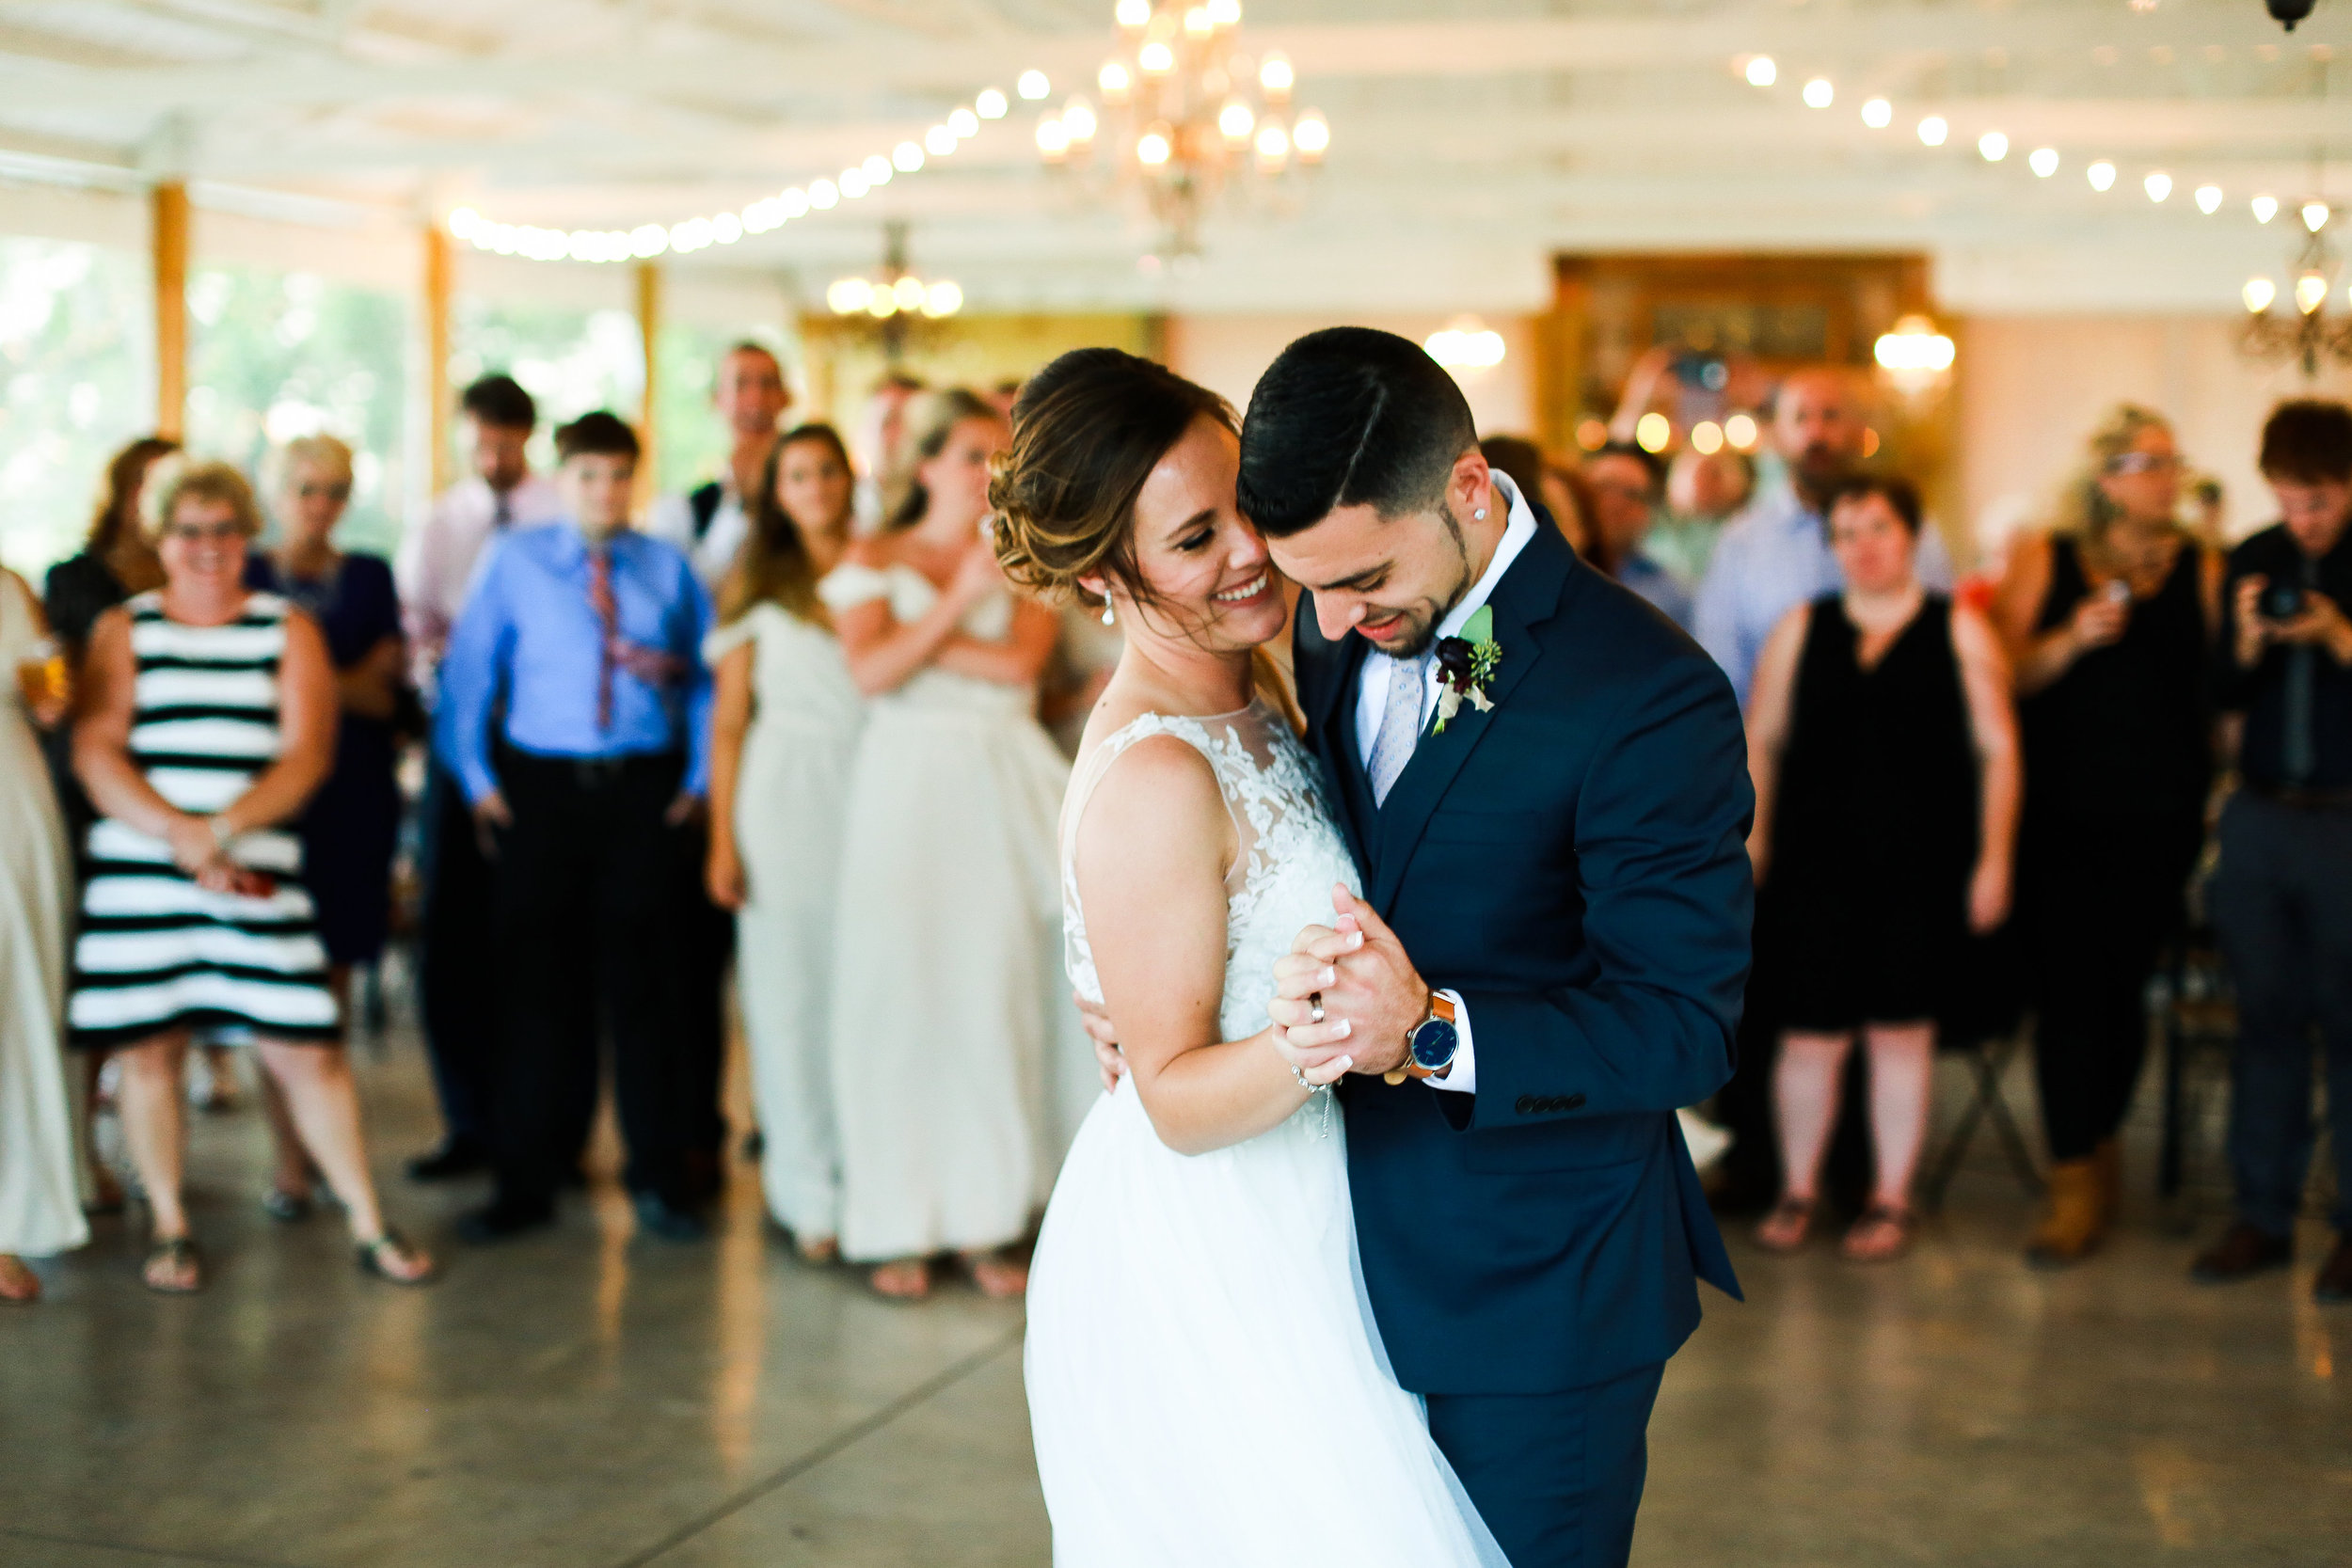 Jenna Kevin Wedding   Sixpence Events day of coordinating   Hannah Schmitt Photography   Legacy Hill Farm   first dance